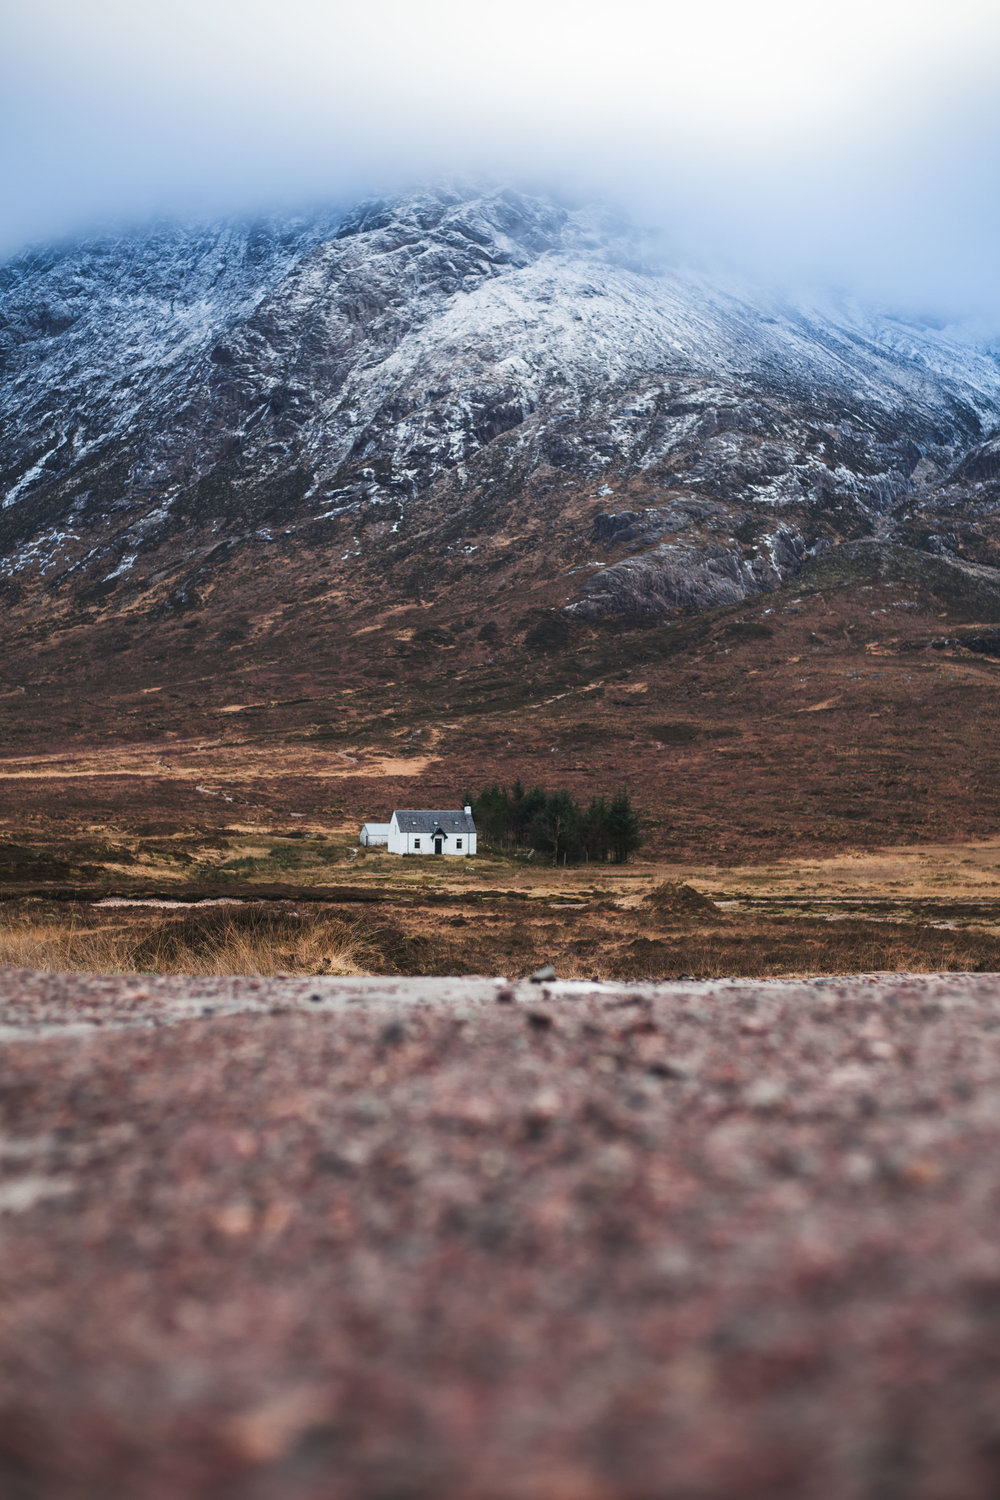 Can't ever go to Glen Coe and not get a picture of 'the house'